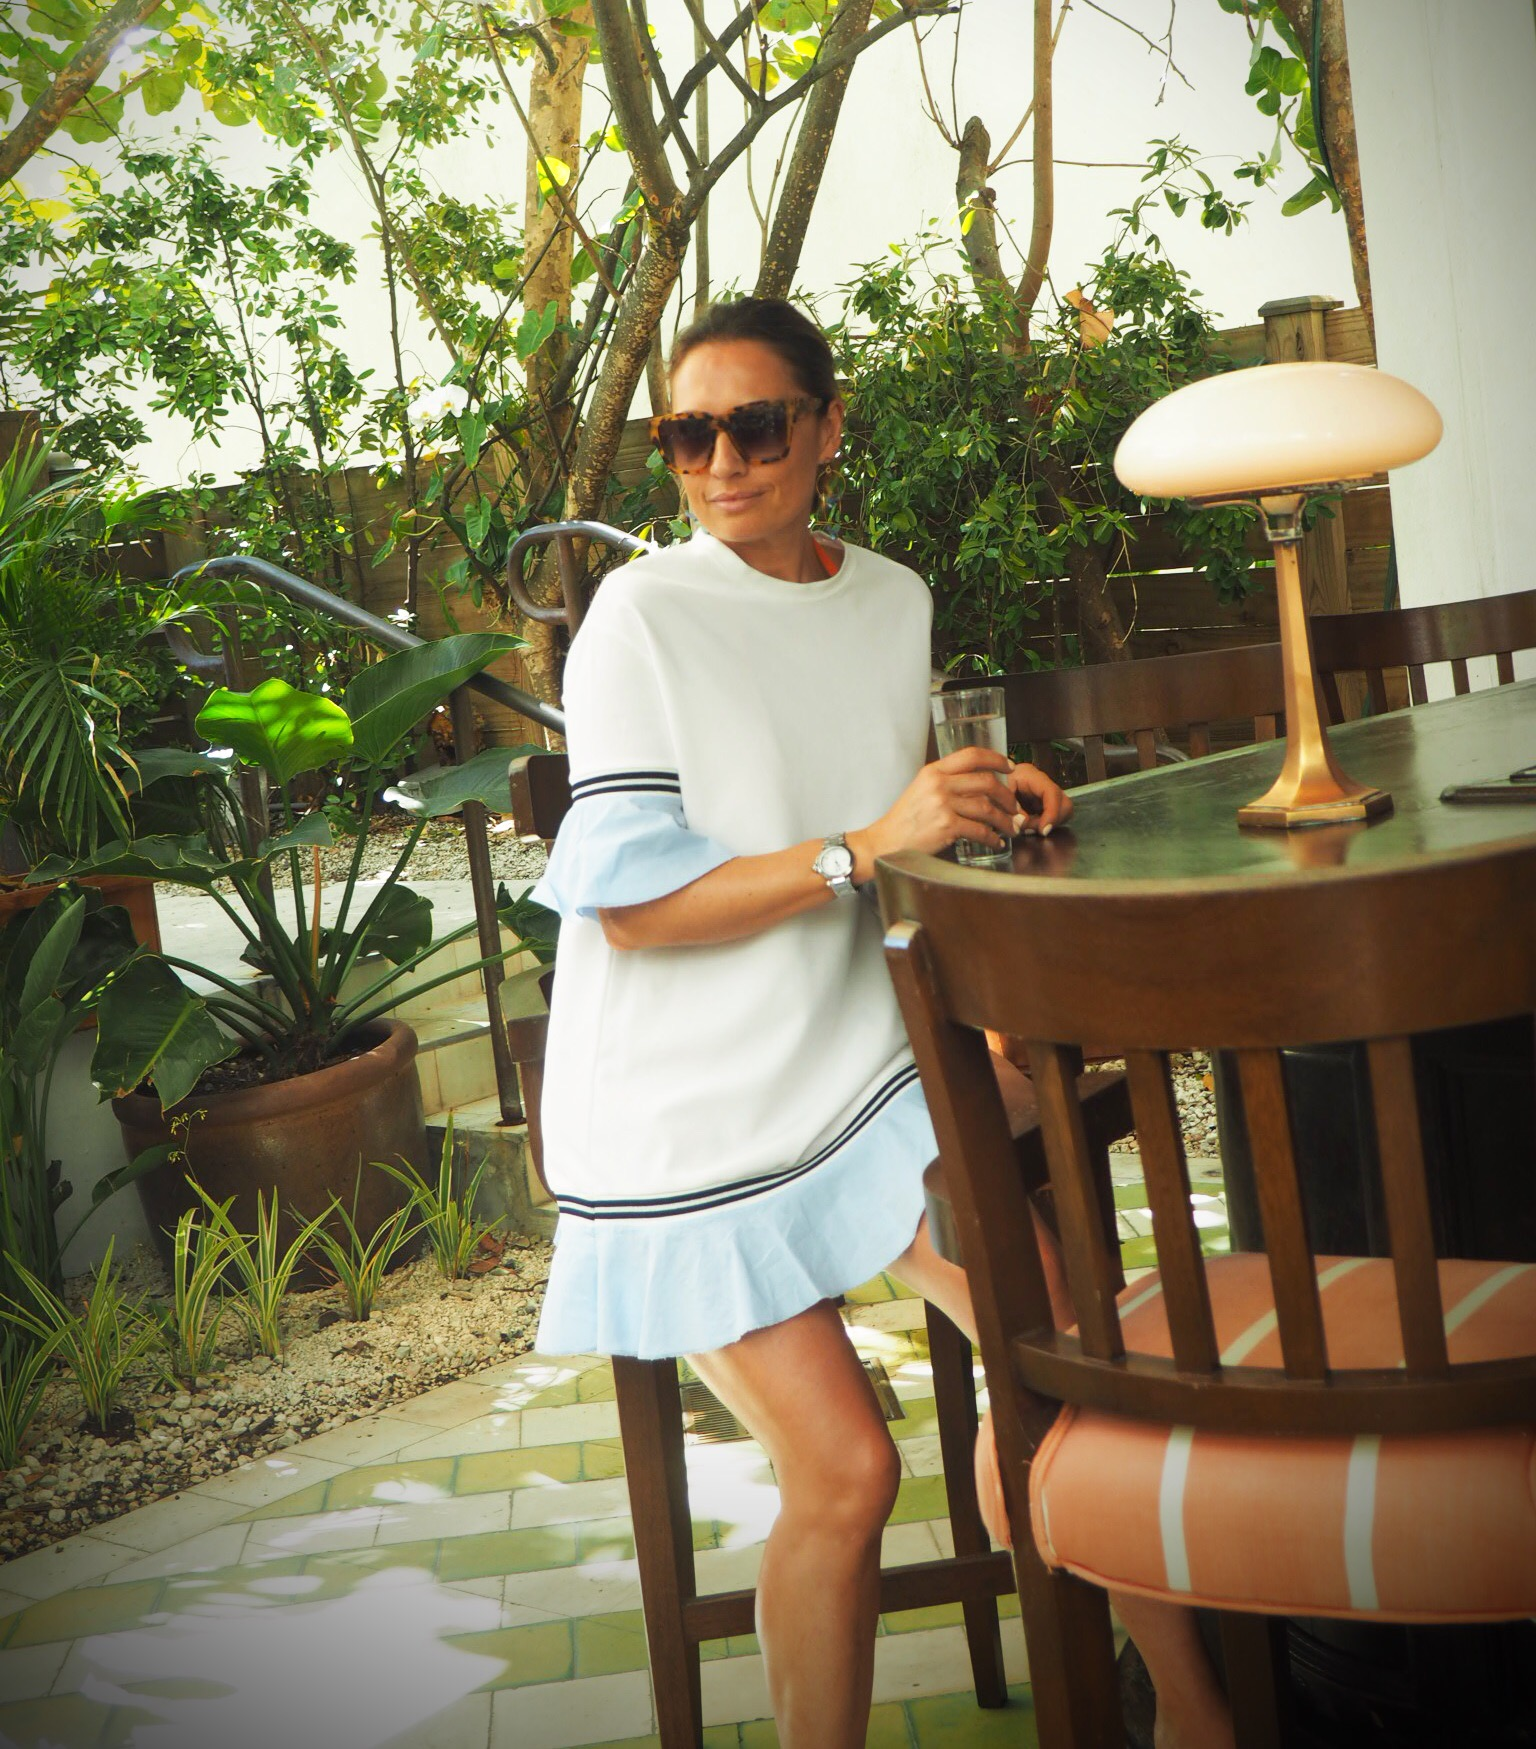 Claire Elizabeth wearing short white tennis style dress with blue cuffs and hemline, sitting at the bar at Soho House in Miami